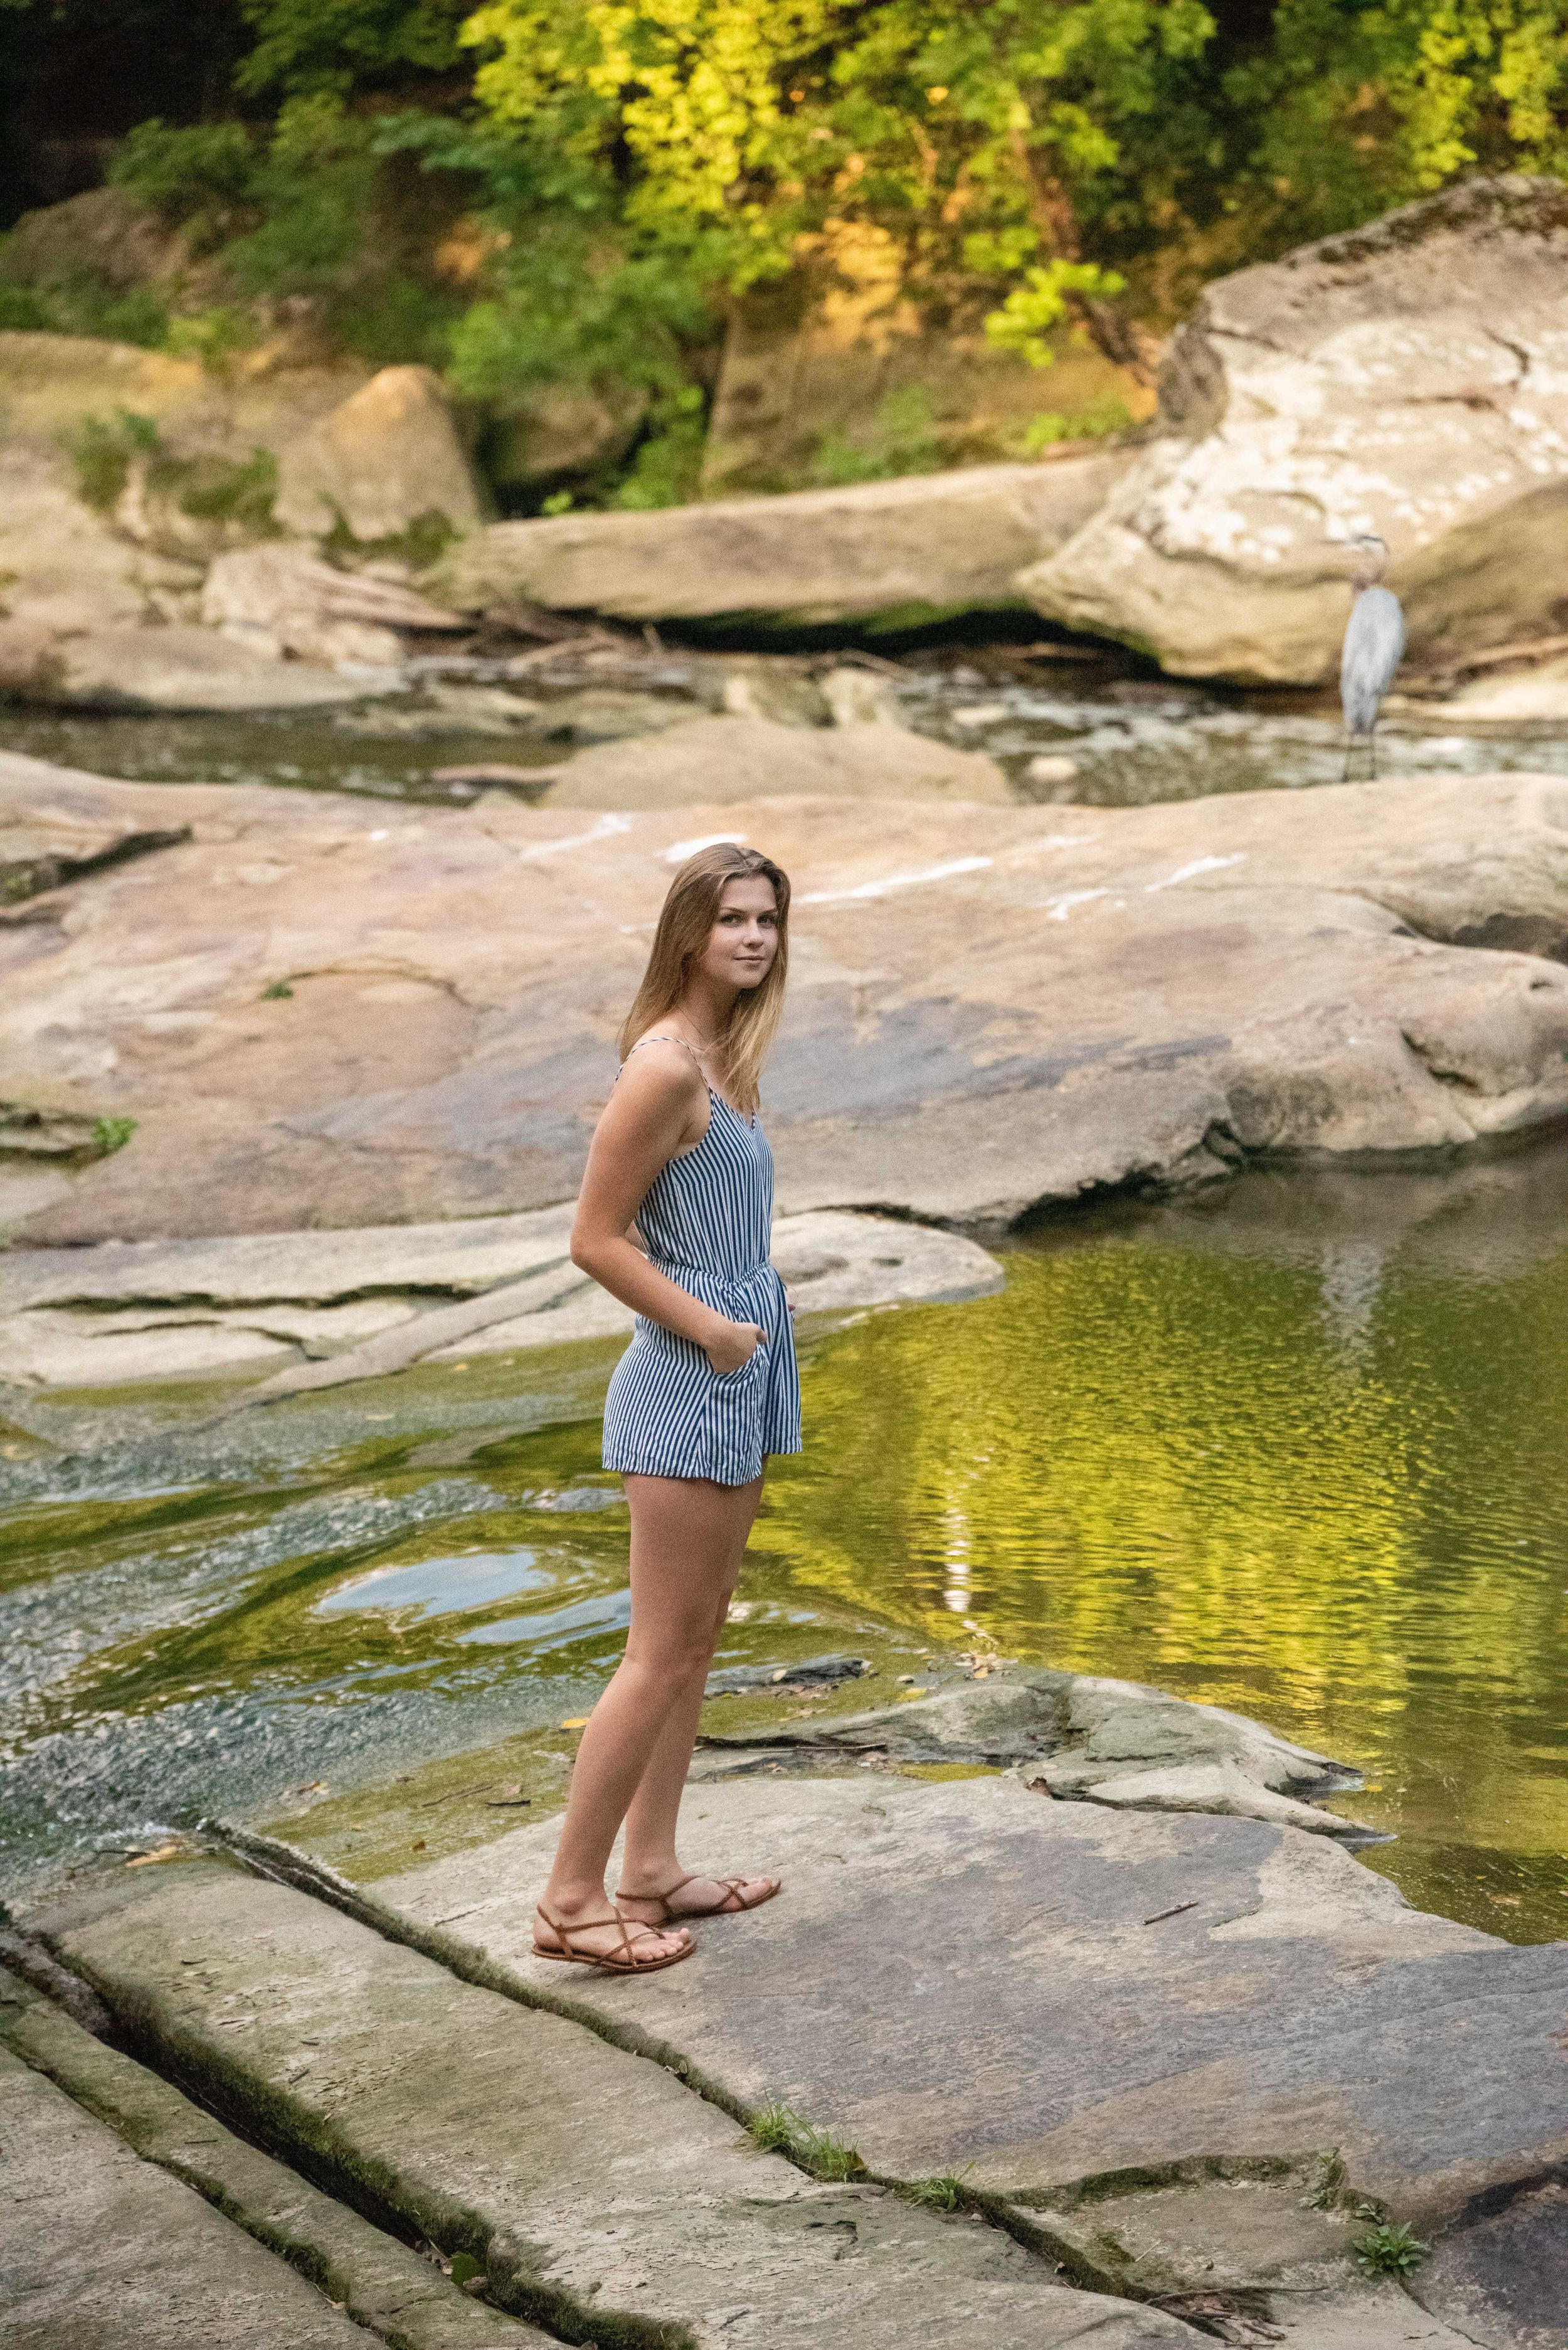 Libby at David Fortier Park, Olmsted Falls, Ohio